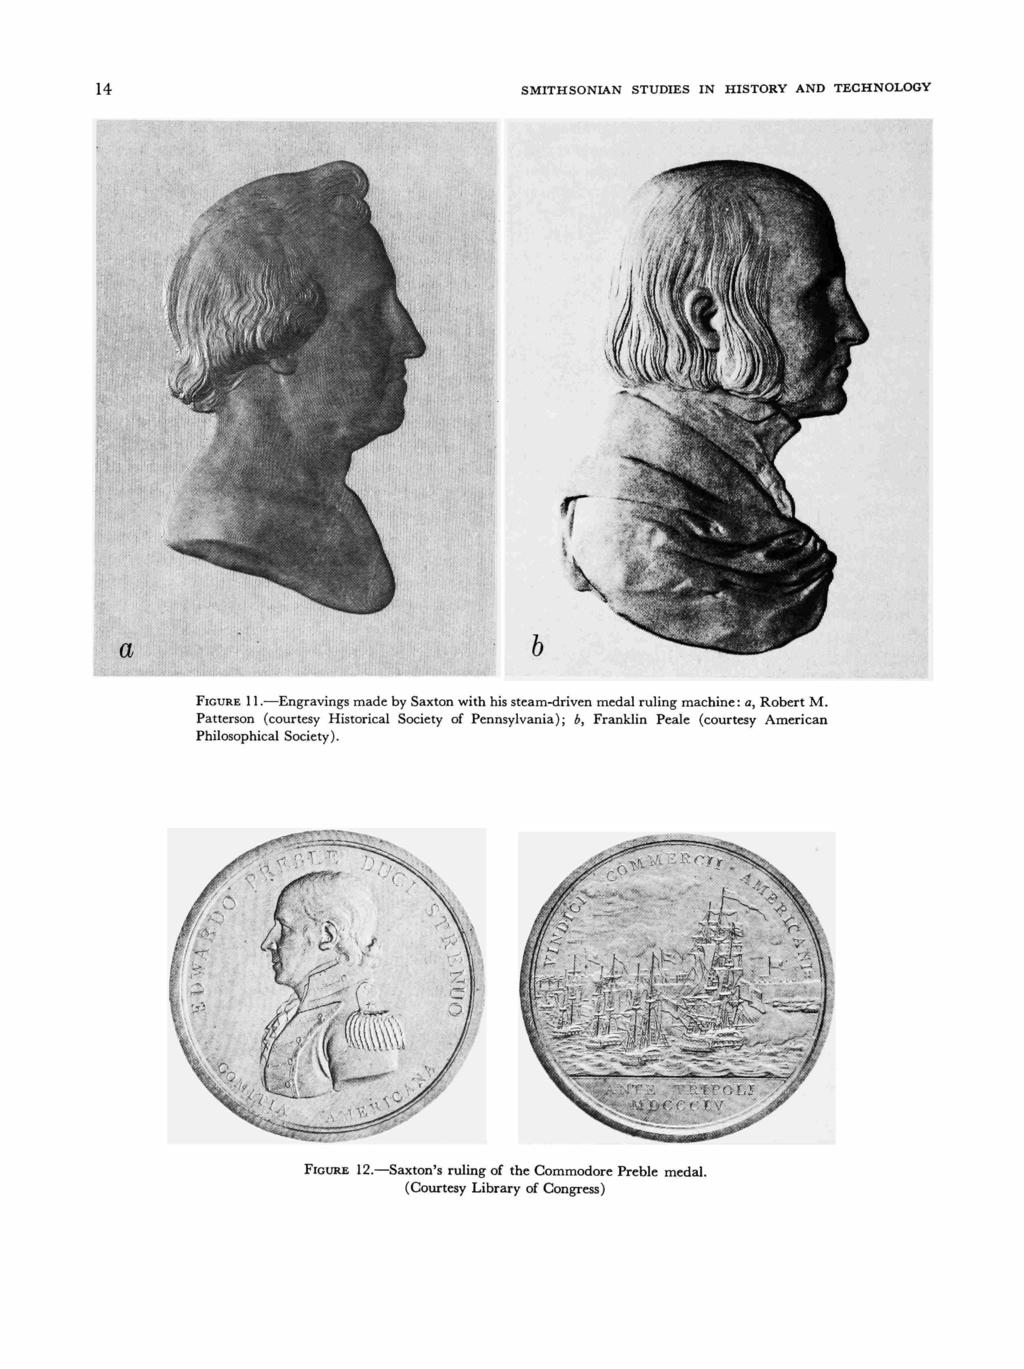 14 SMITHSONIAN STUDIES IN HISTORY AND TECHNOLOGY a FIGURE 11. Engravings made by Saxton with his steam-driven medal ruling machine: a, Robert M.